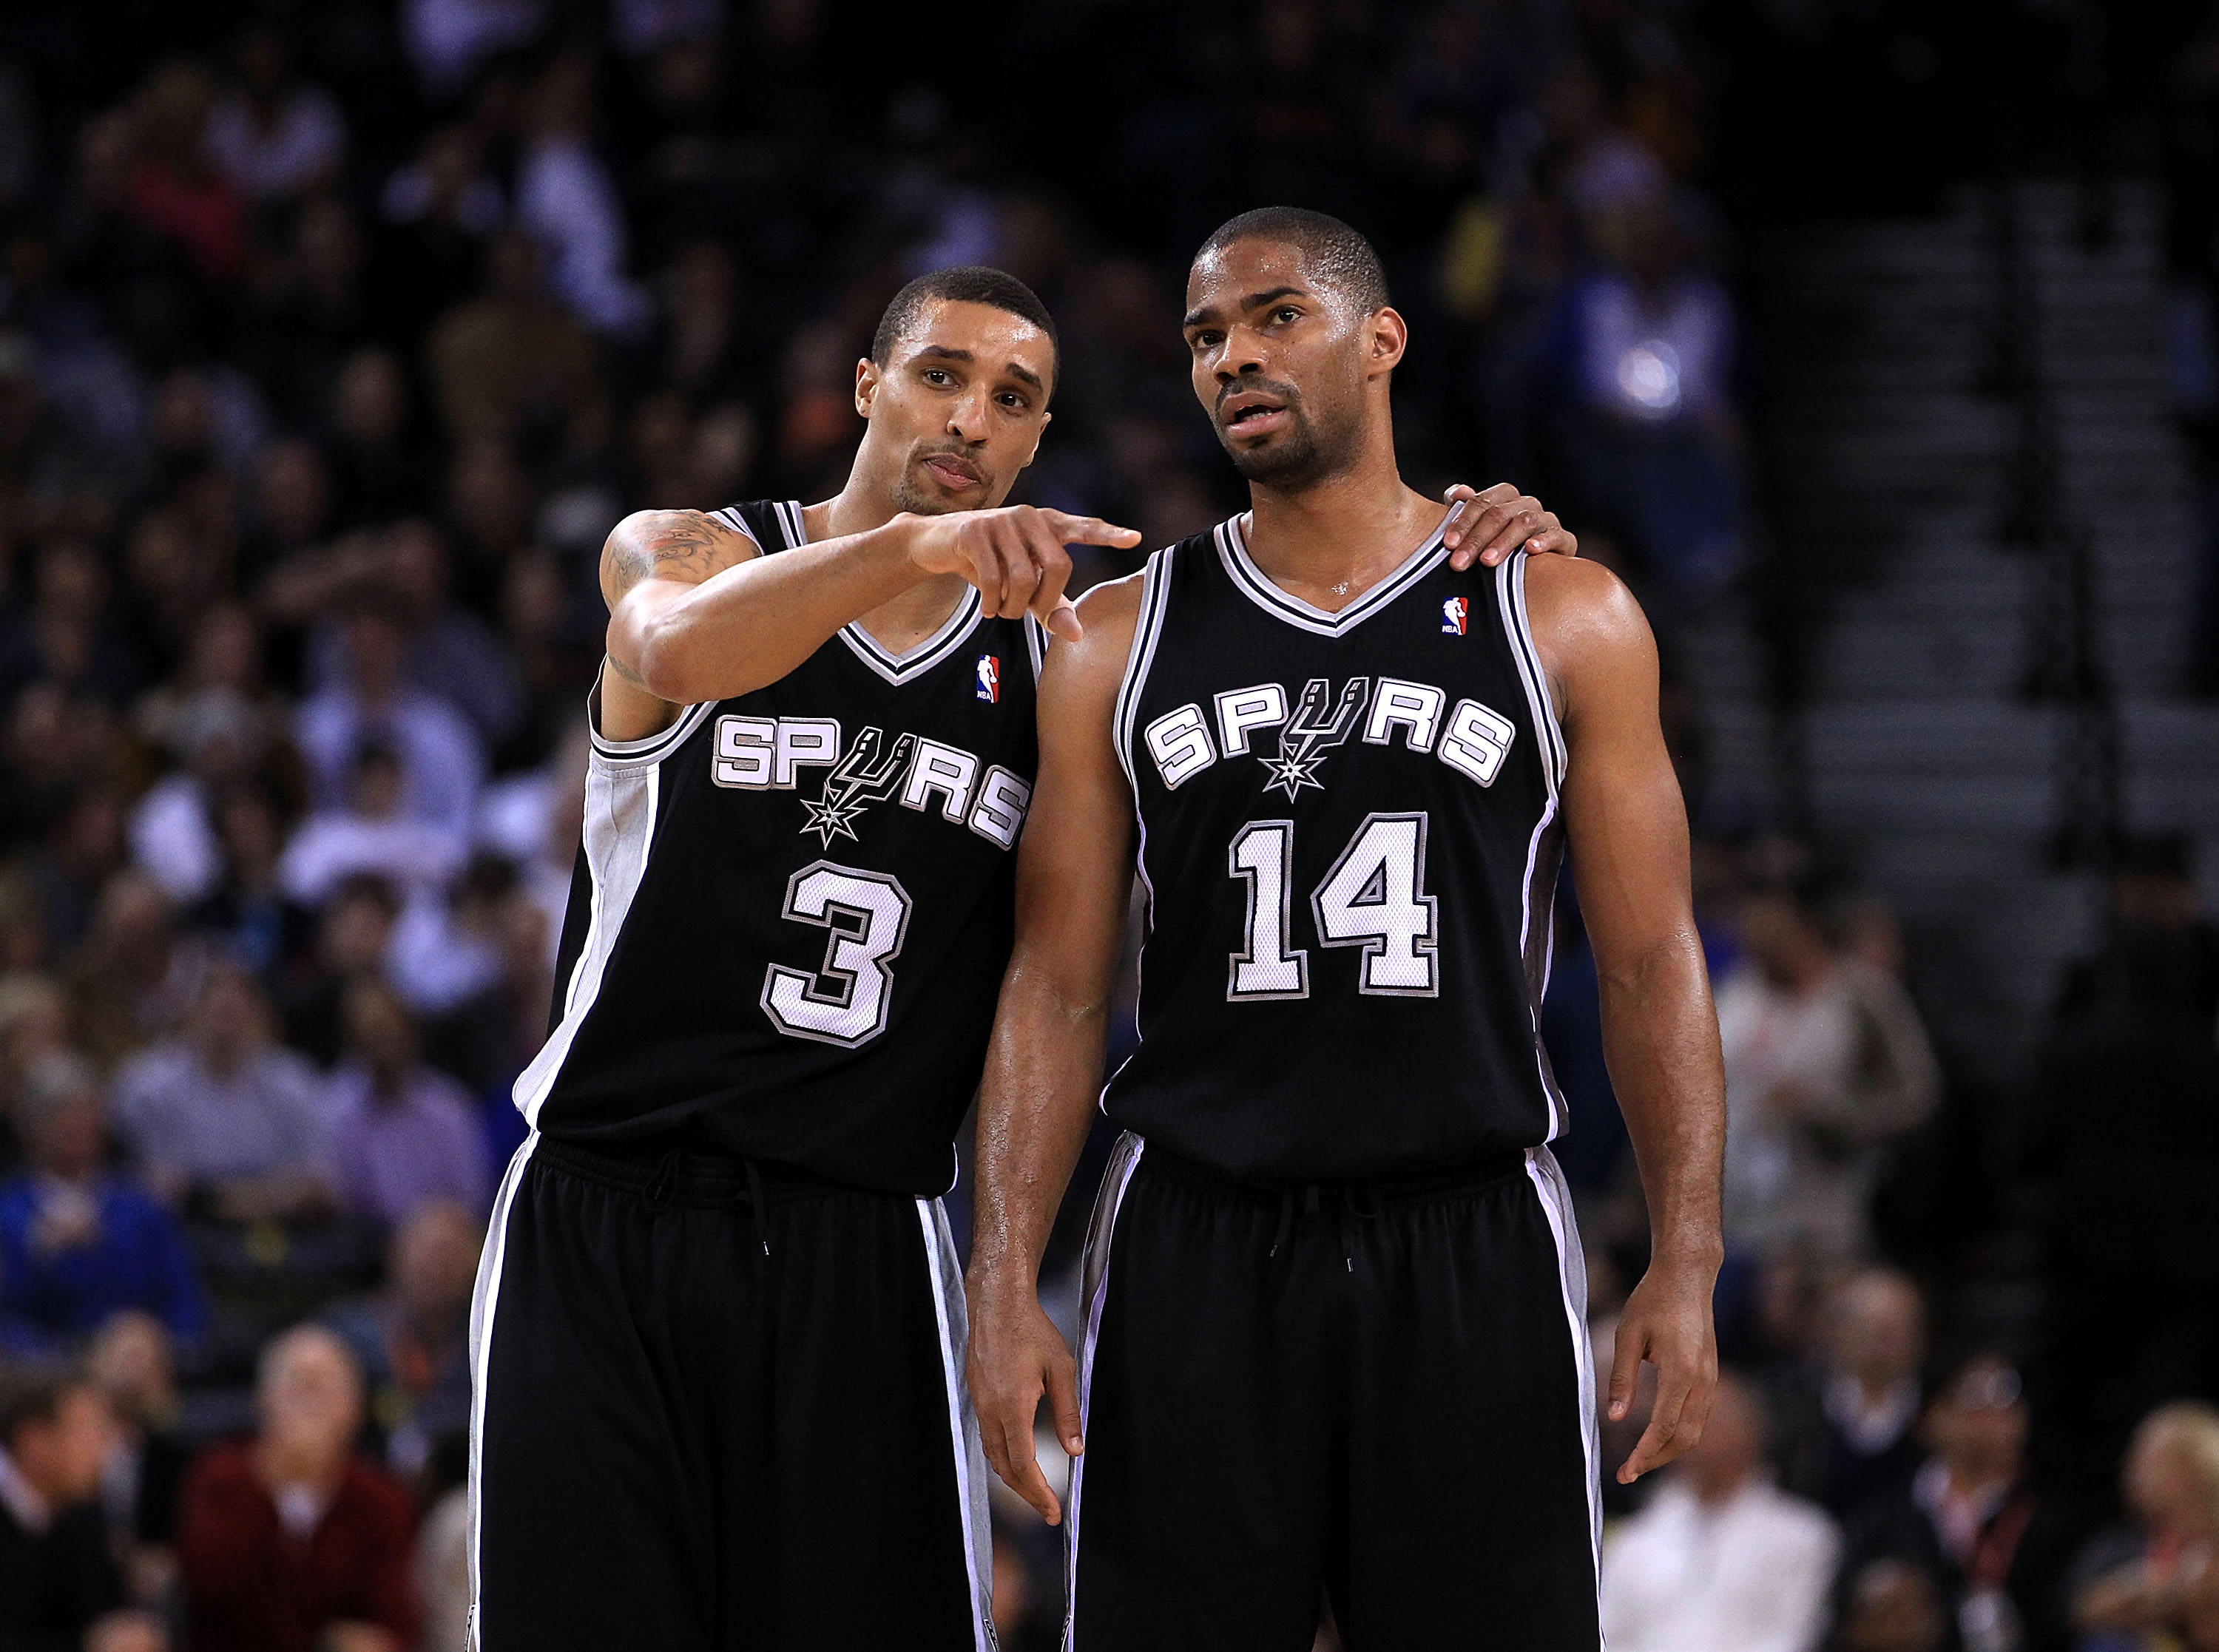 OAKLAND, CA - JANUARY 24:  George Hill #3 talks to Gary Neal #14 of the San Antonio Spurs during their game against the Golden State Warriors at Oracle Arena on January 24, 2011 in Oakland, California.  NOTE TO USER: User expressly acknowledges and agrees